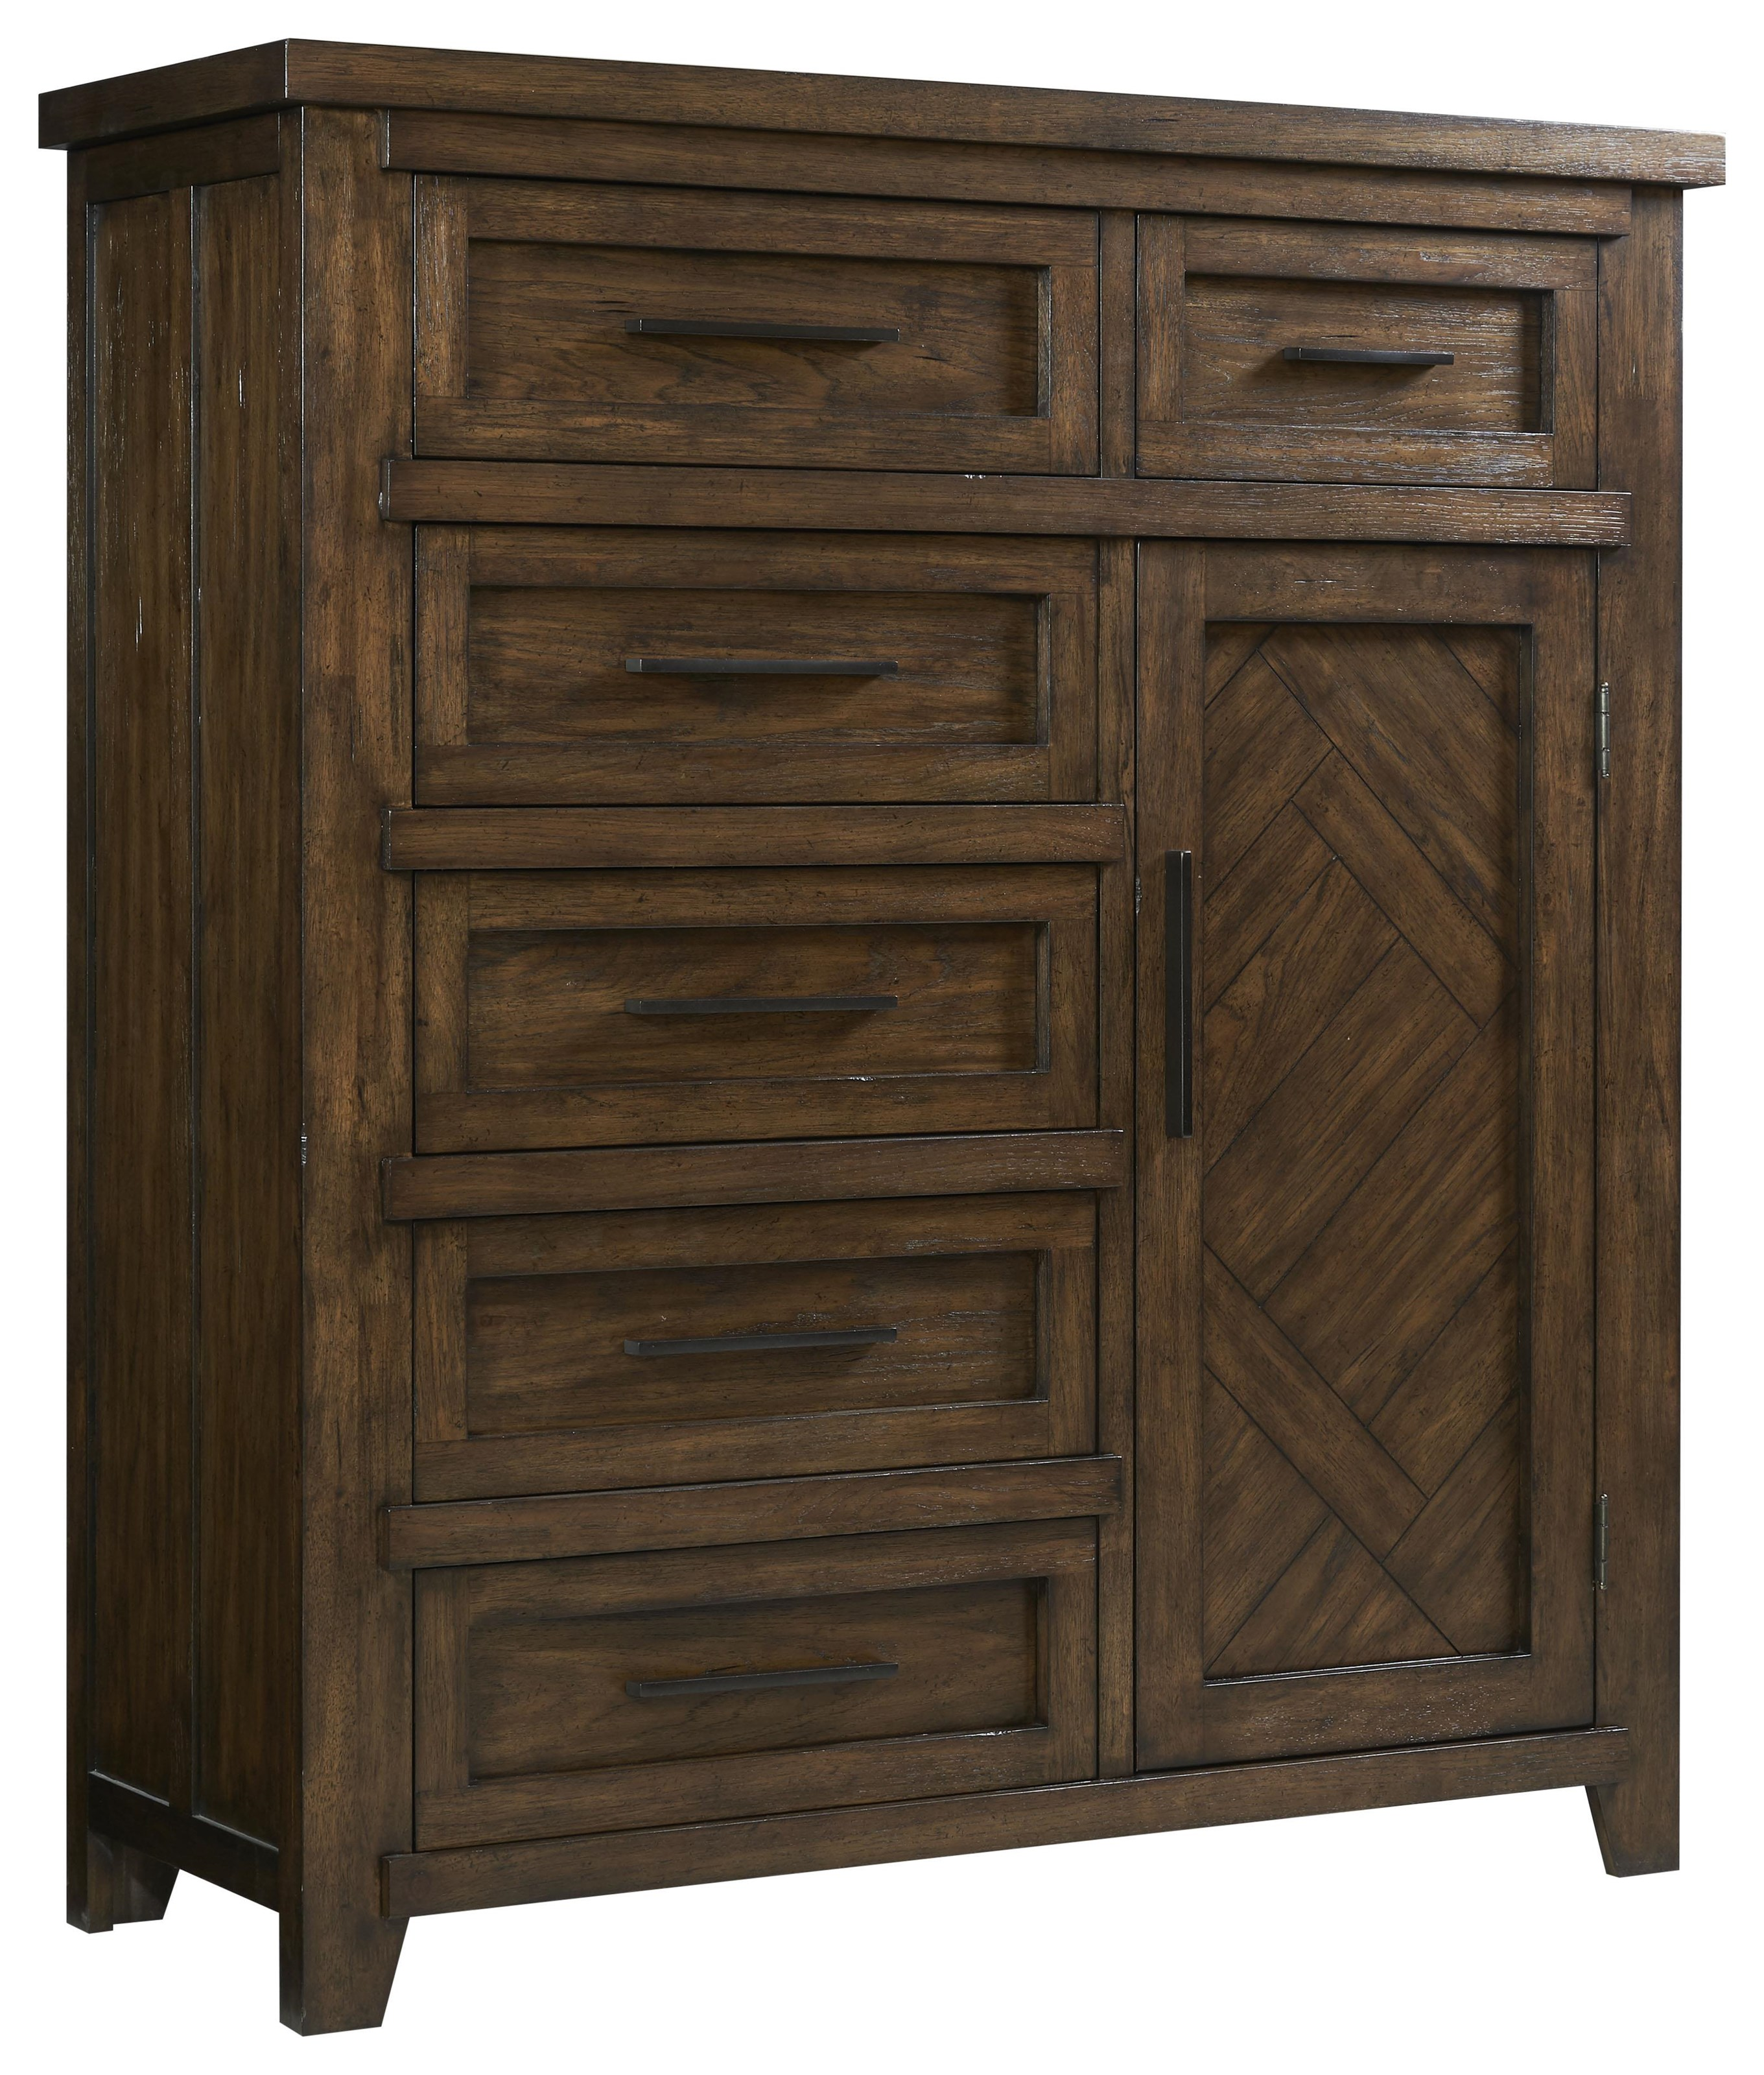 Tally's Crossing Chest by FD Home at Darvin Furniture